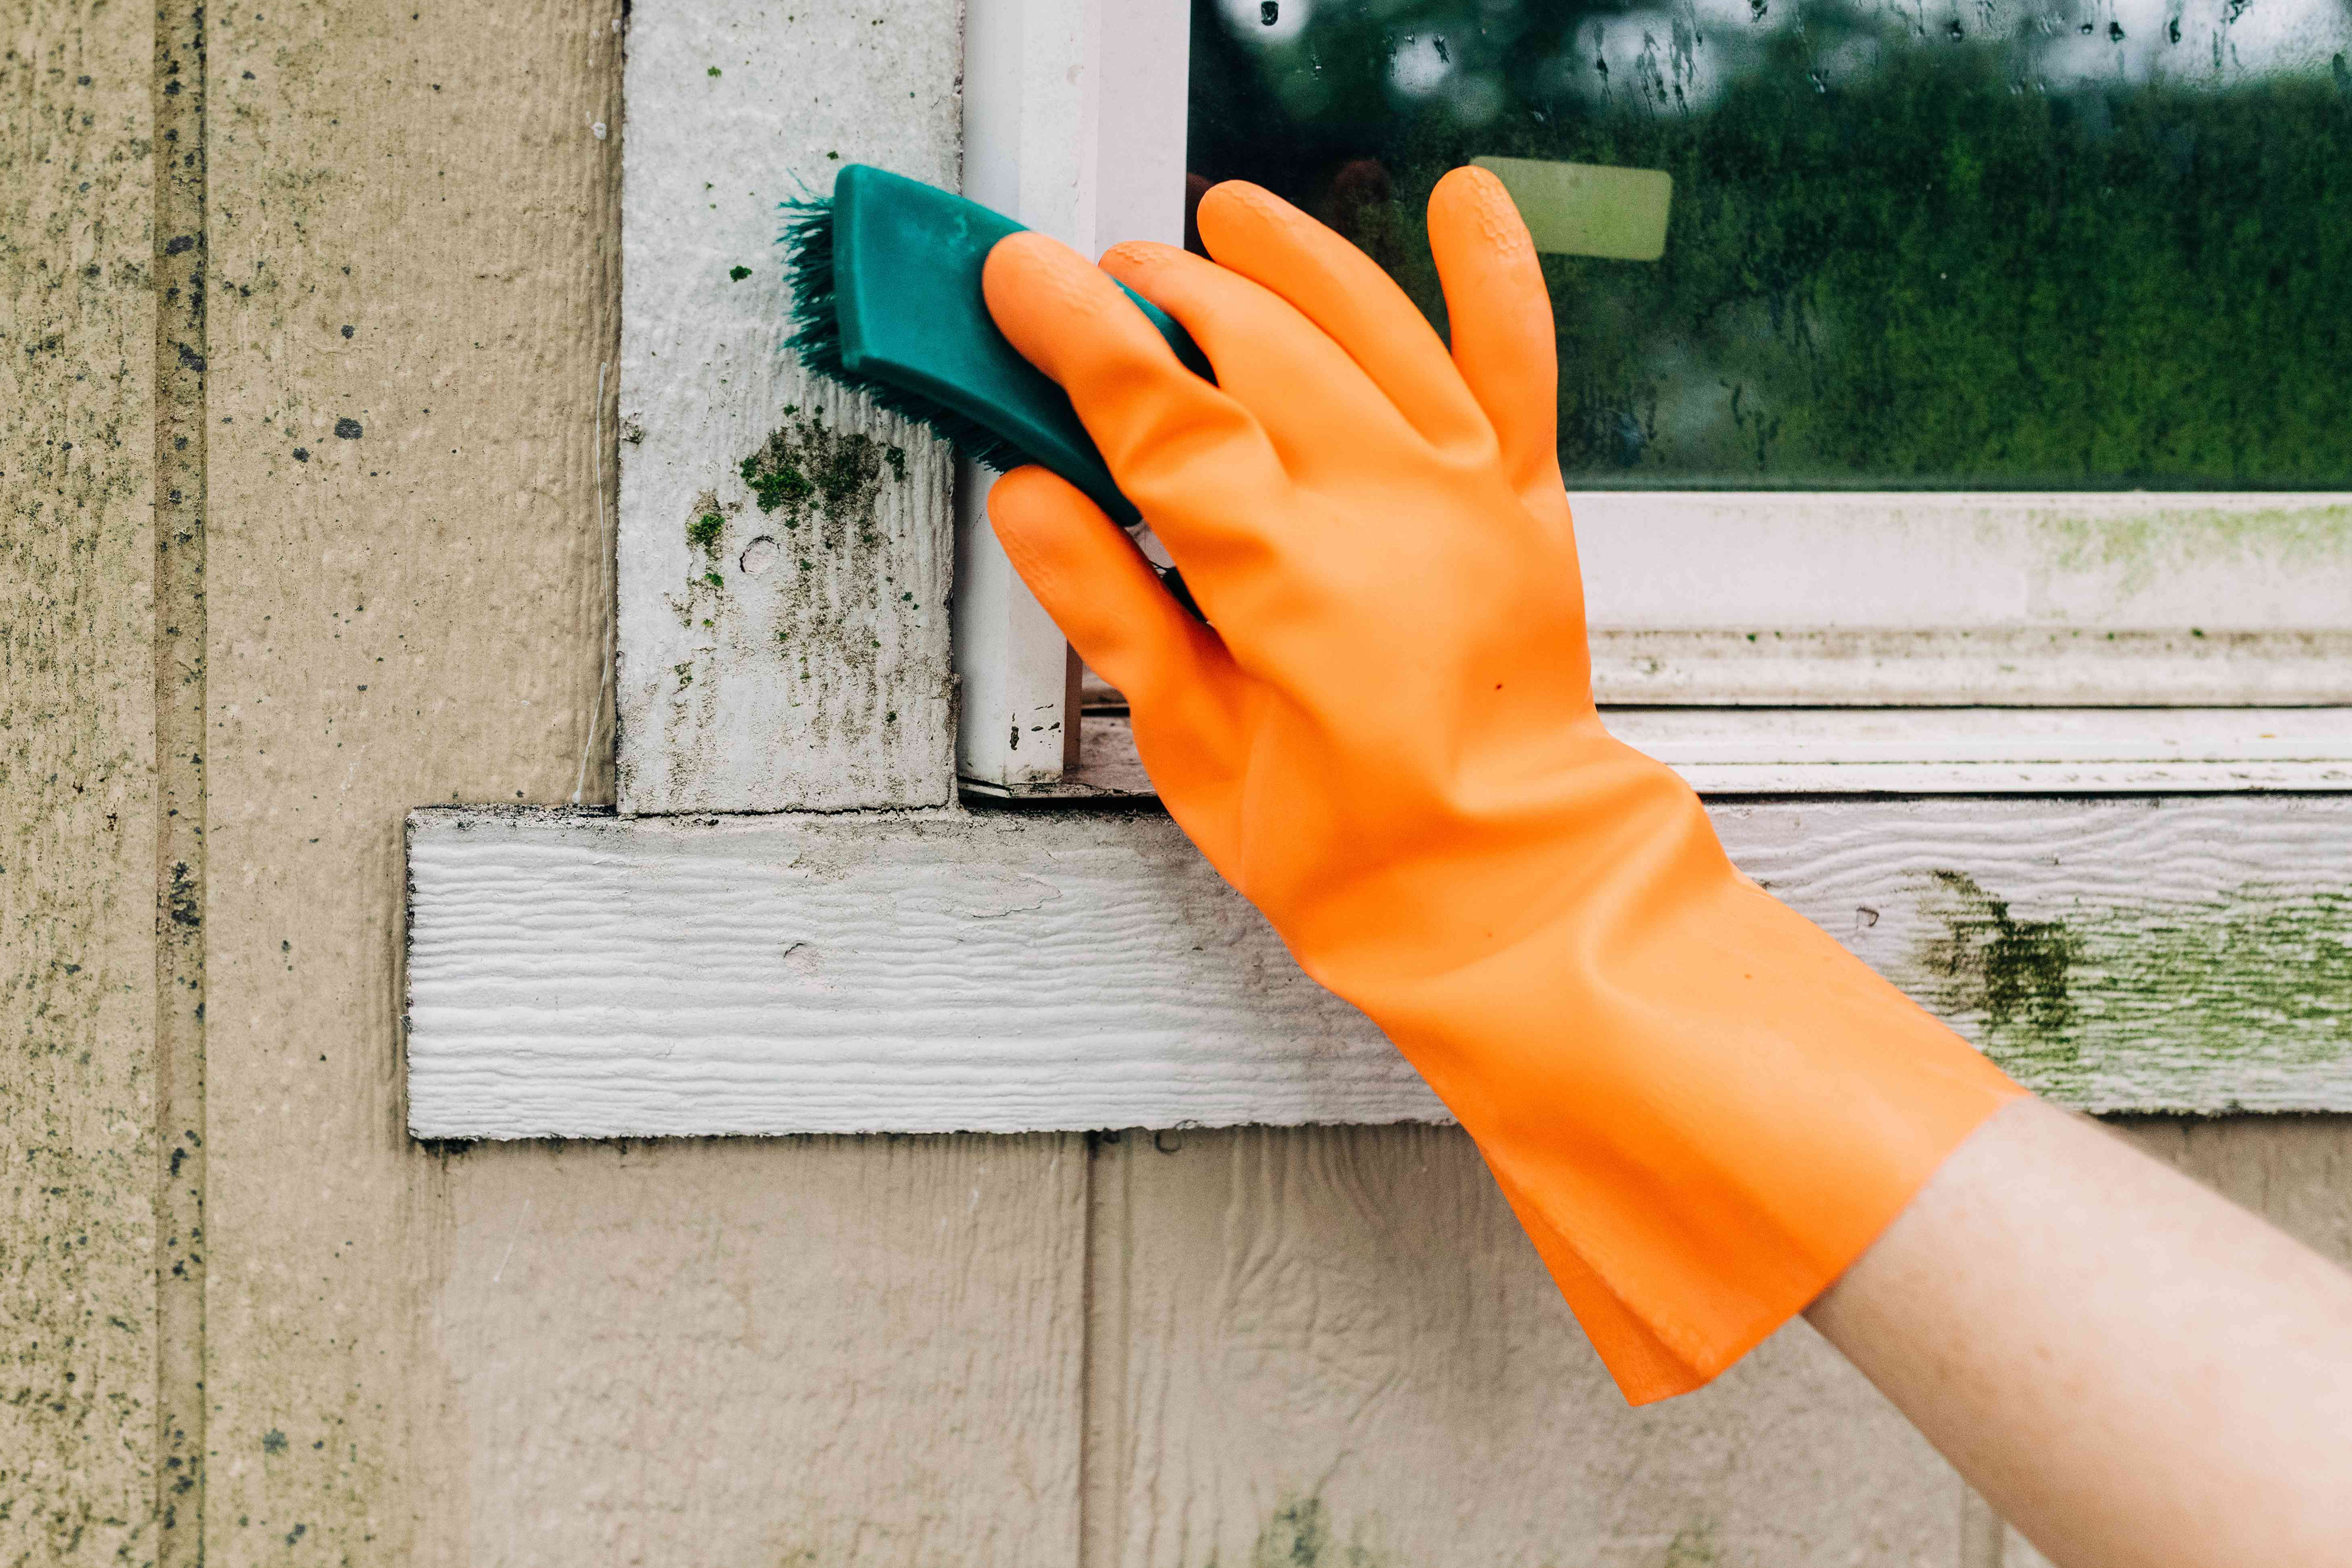 Green soft-bristled brush scrubbing mold off with liquid detergent and water solution with orange gloves